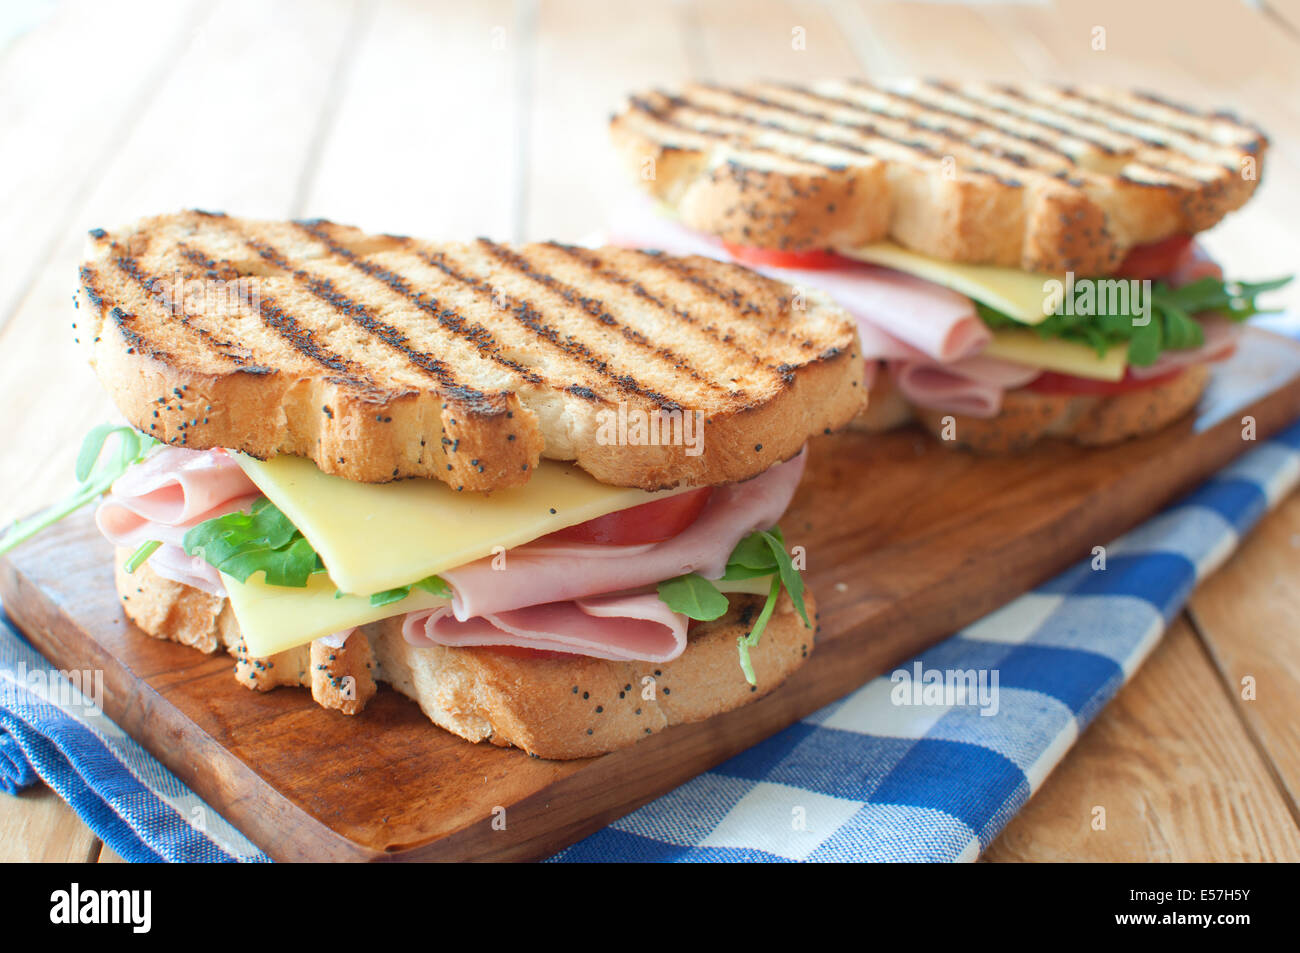 Grilled sandwiches with ham and cheese on top of a chopping board - Stock Image